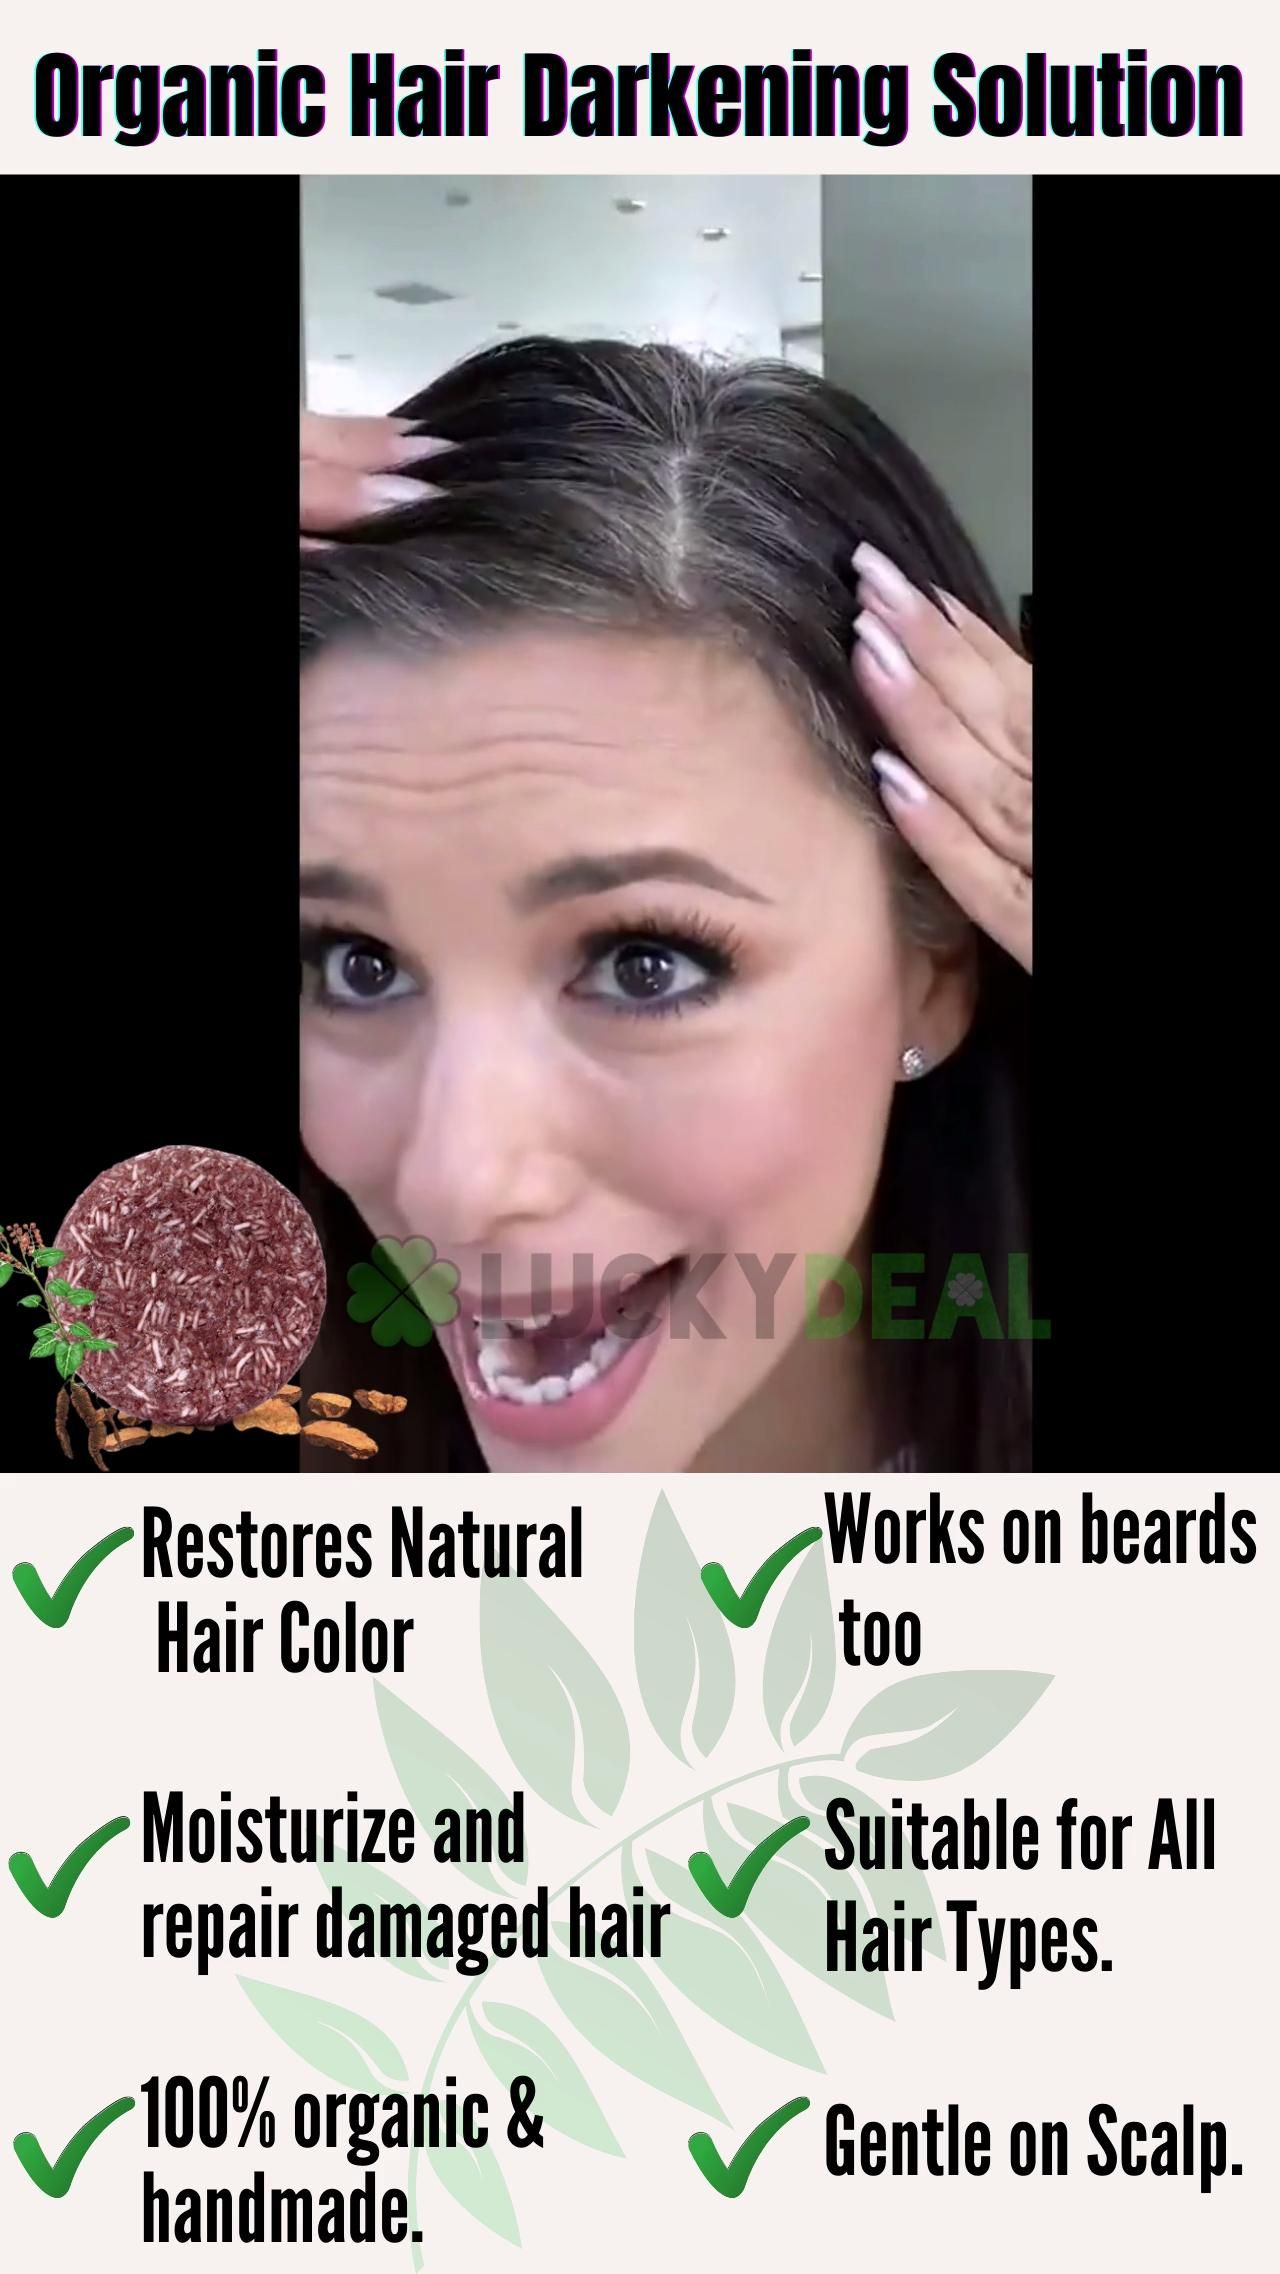 😲🌿A natural way to get rid of your grey hair🌿 Spec